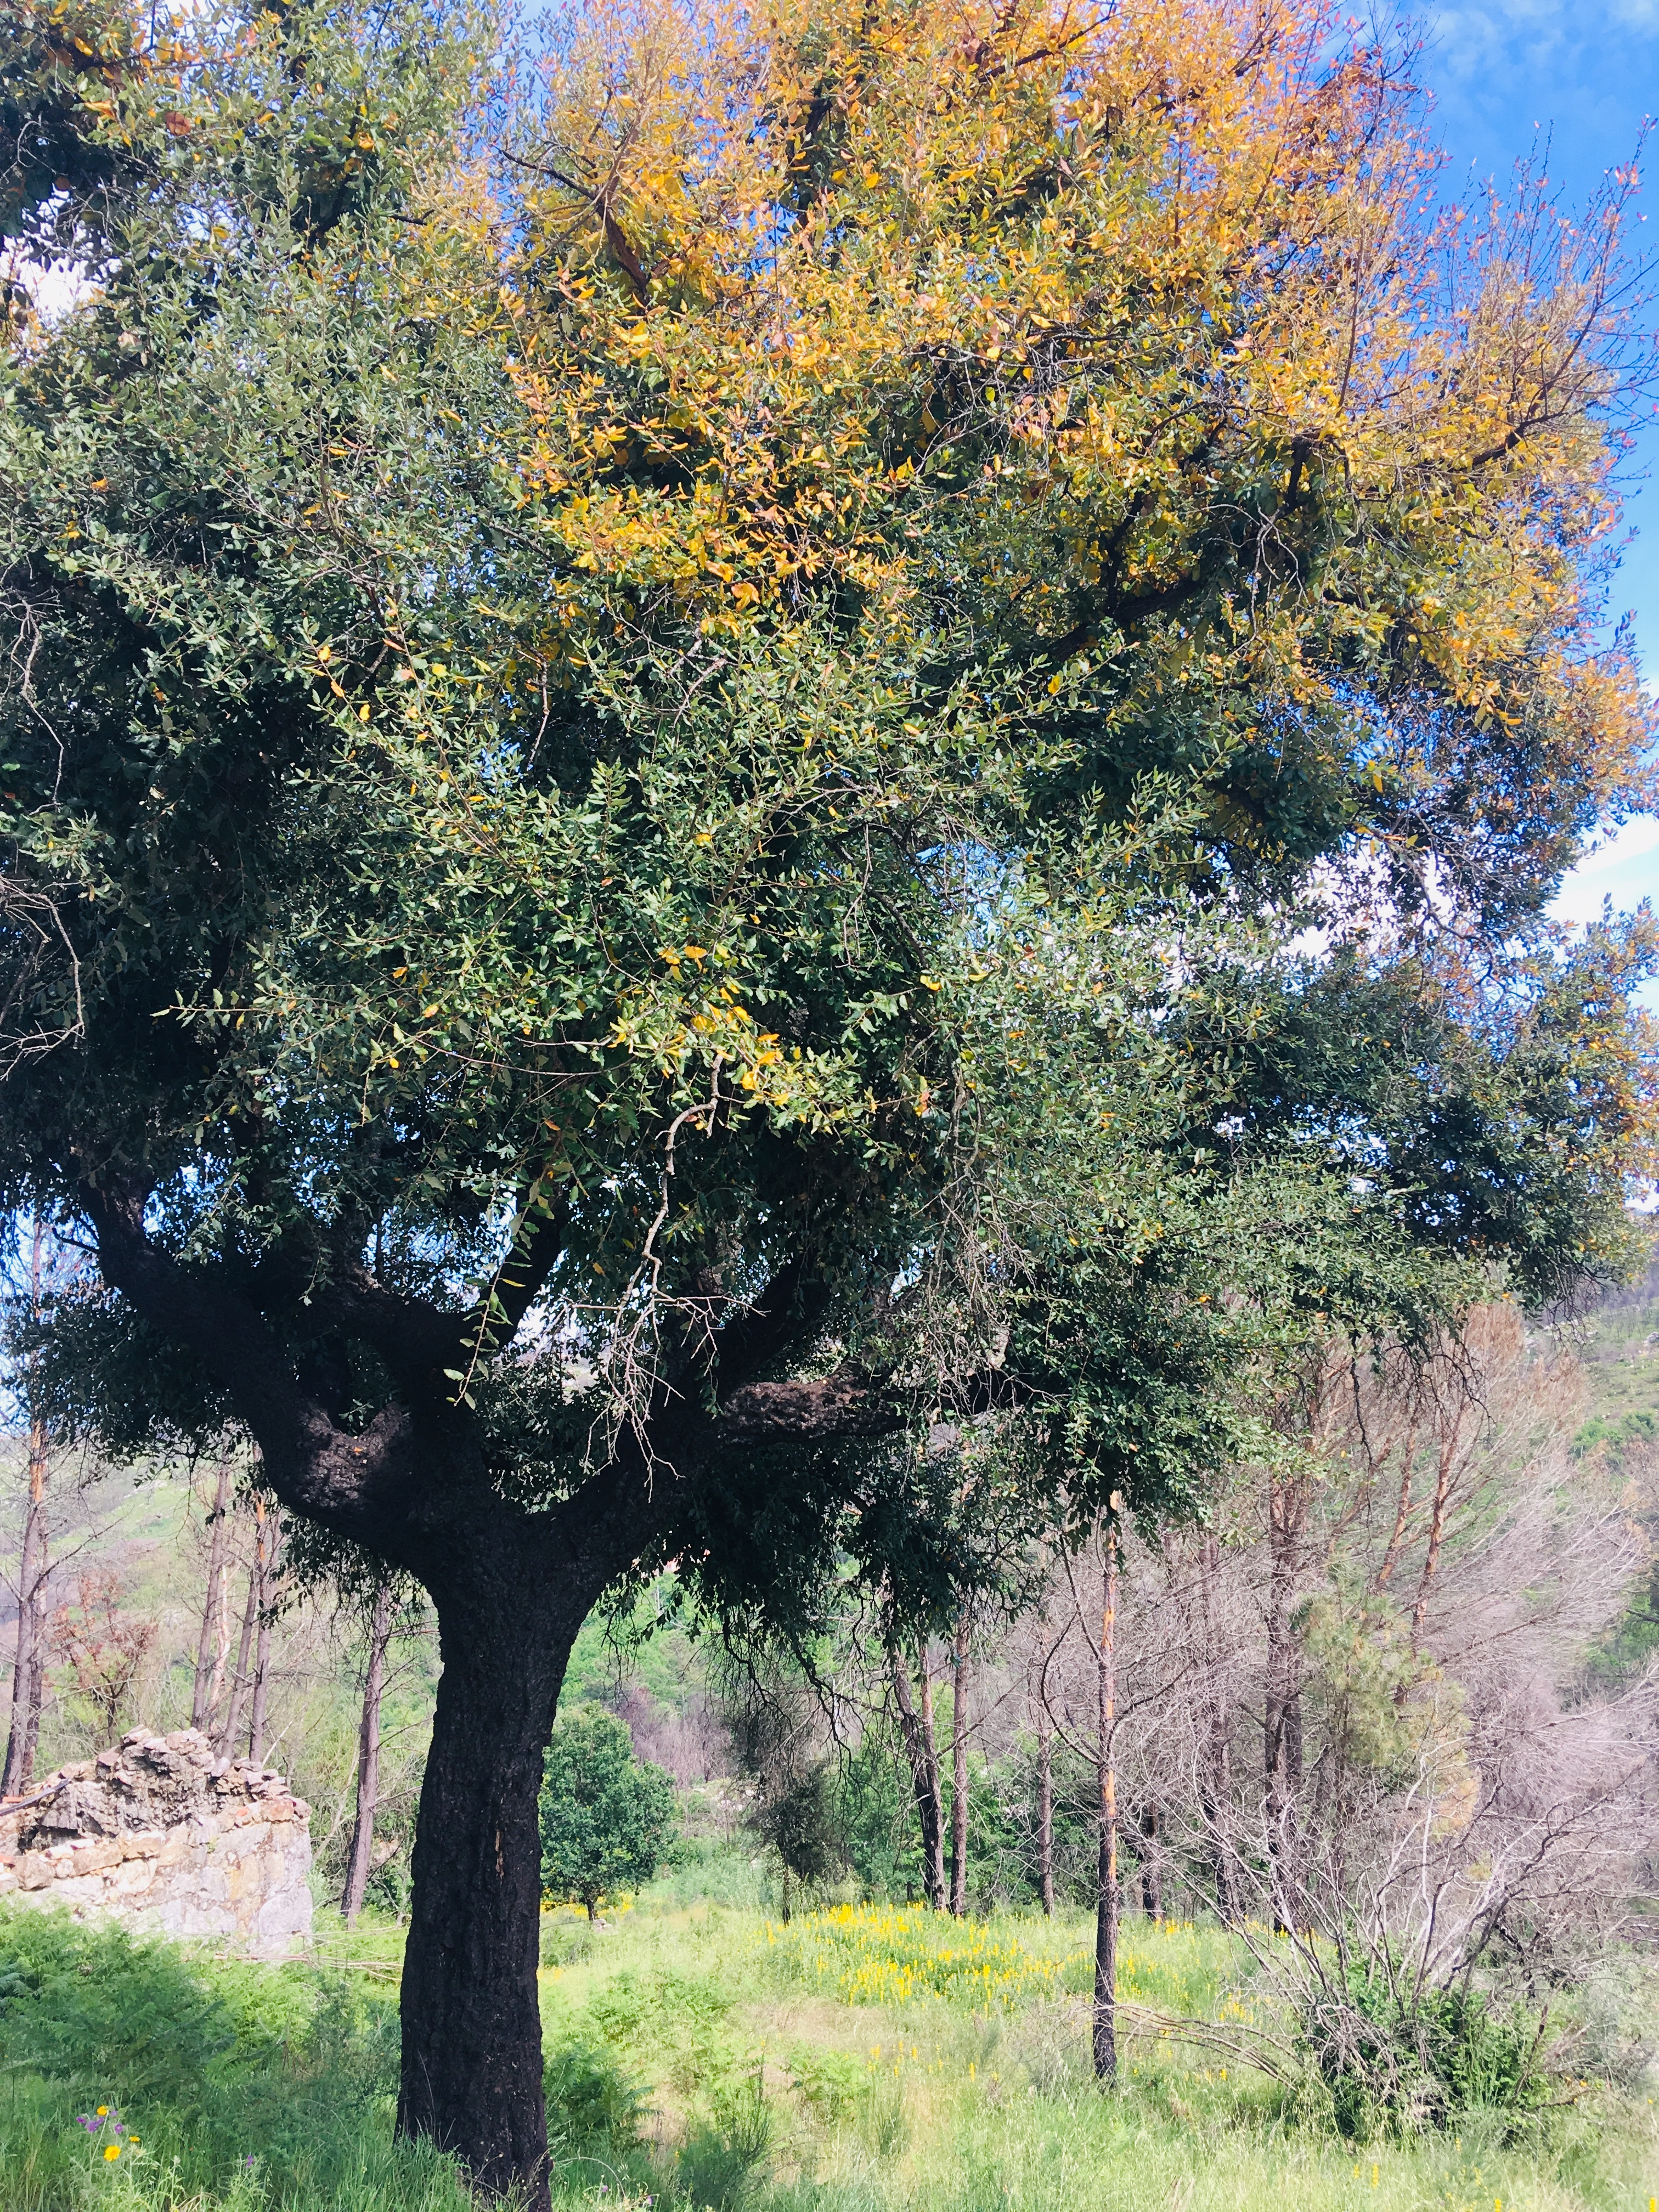 Cork Oak, well adapted to wild fires